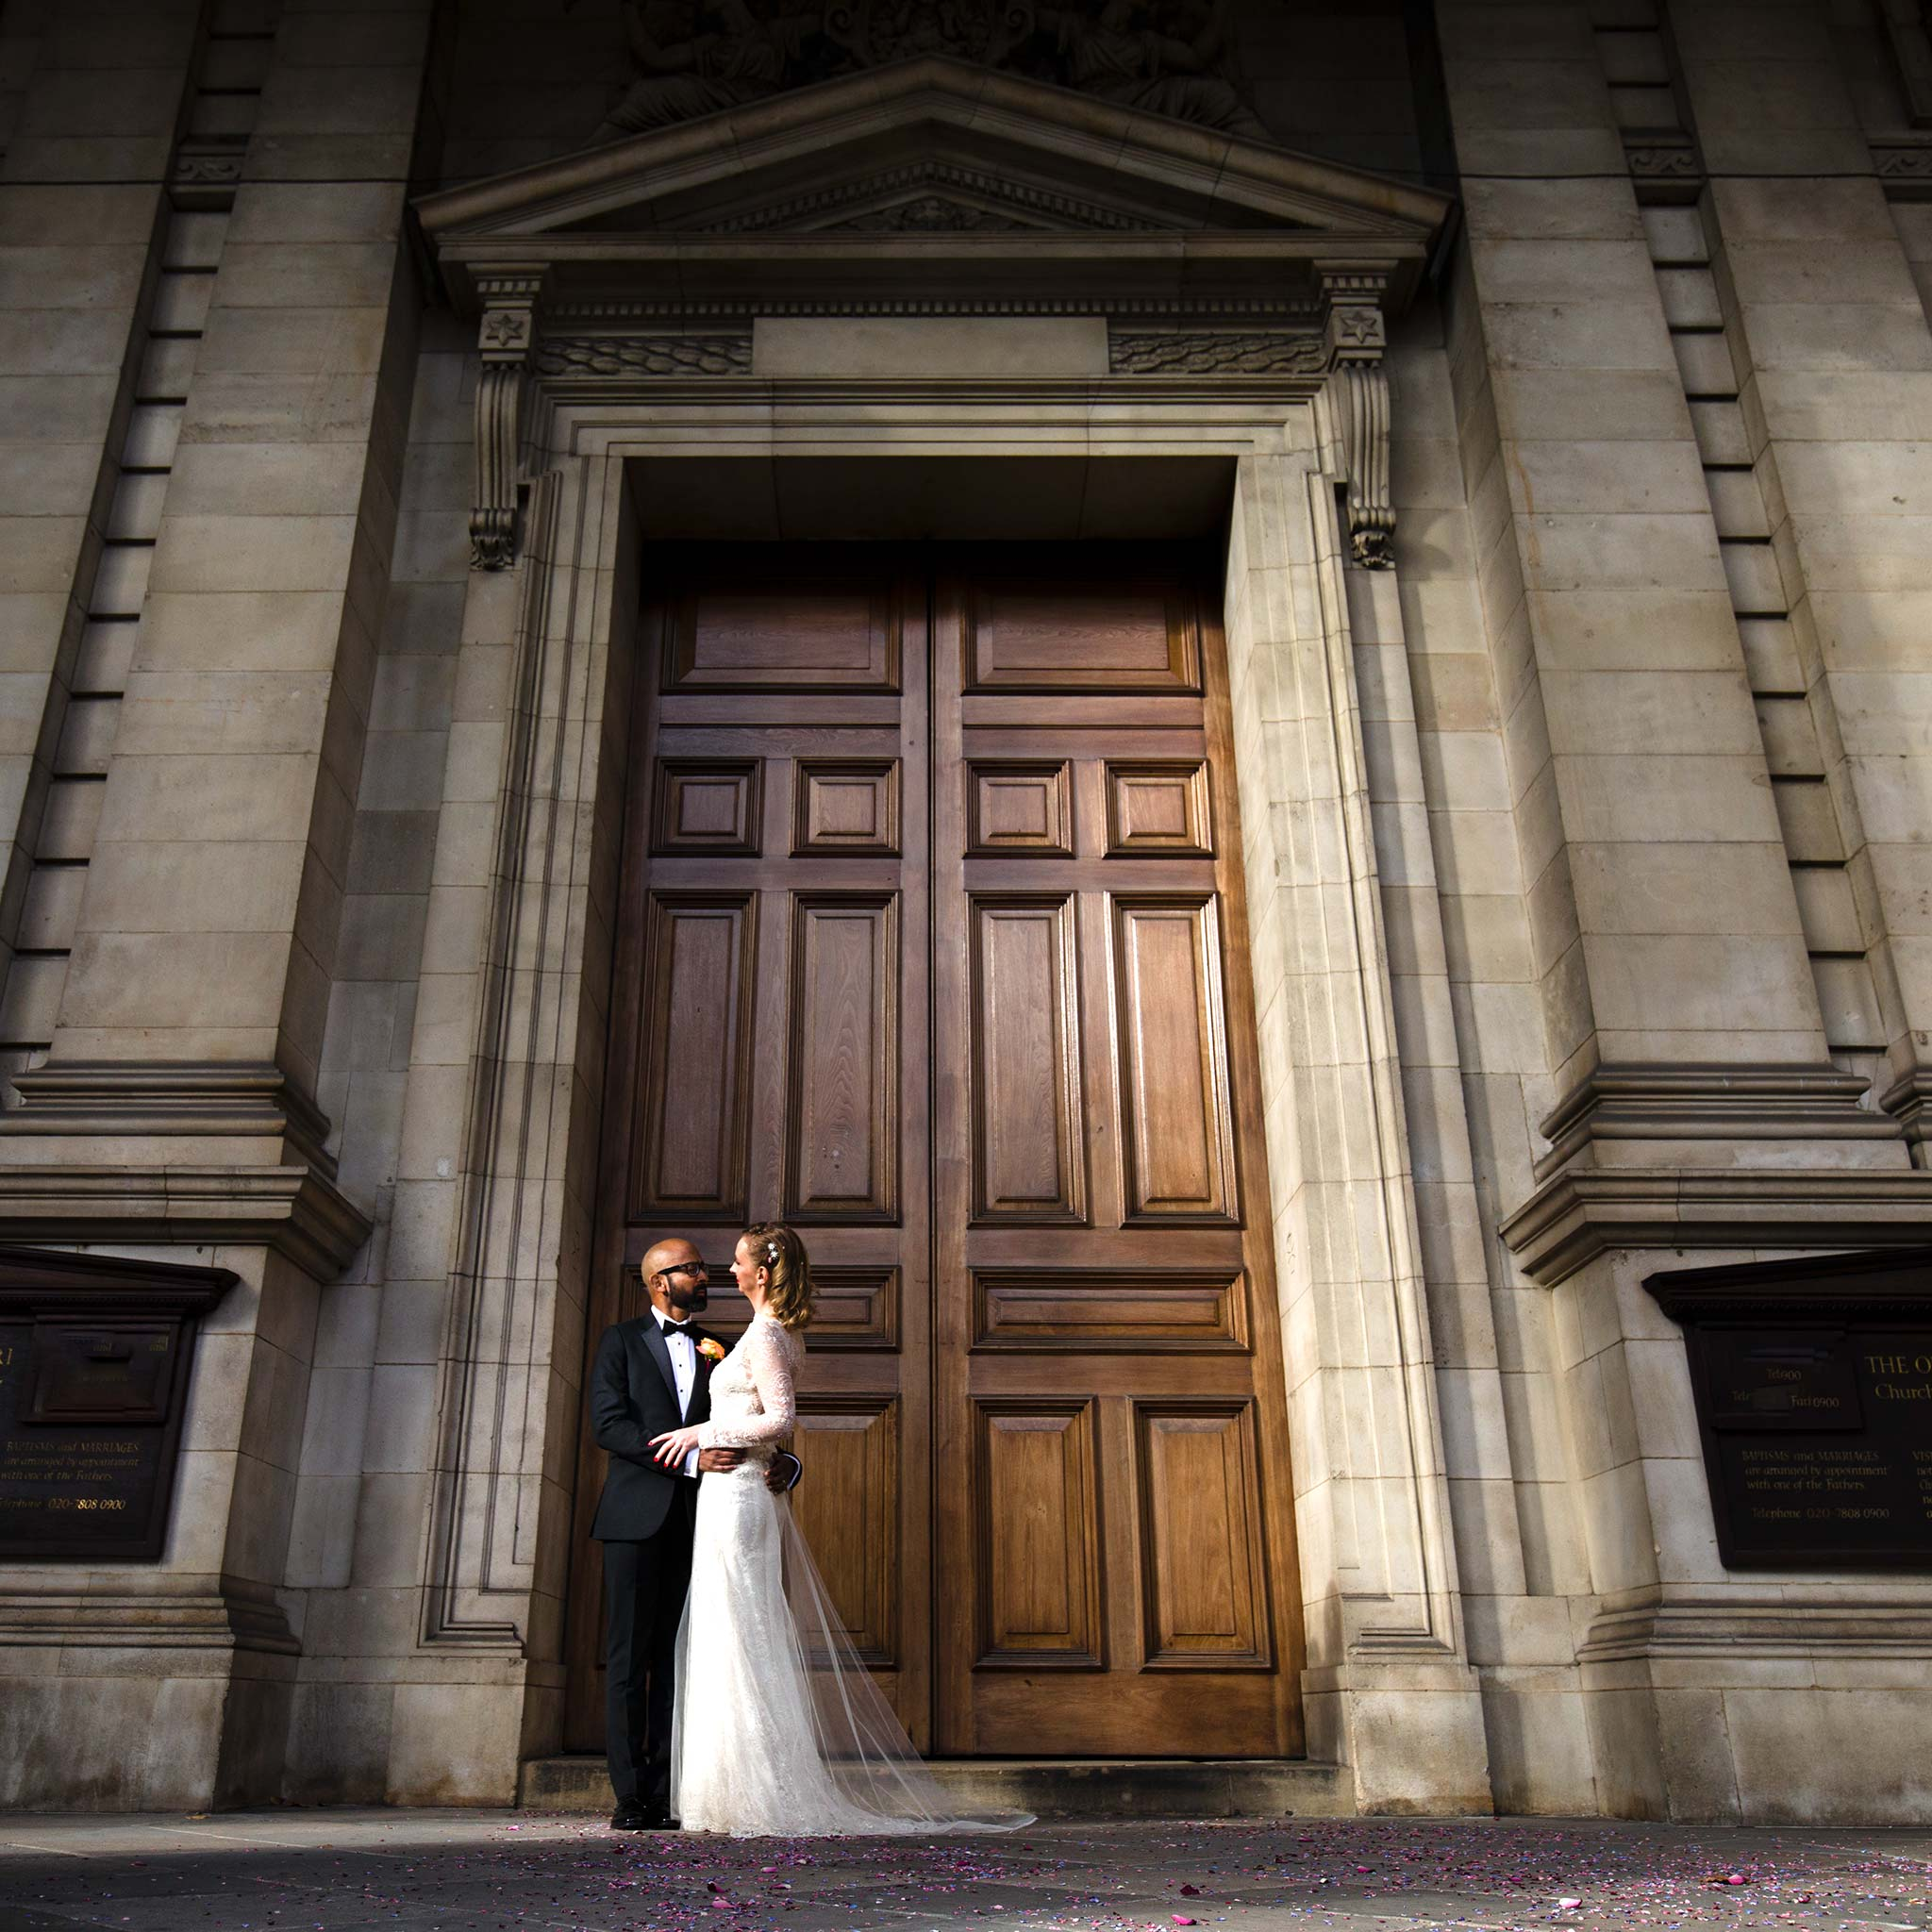 Brompton Oratory and Ognisko Restaurant Wedding